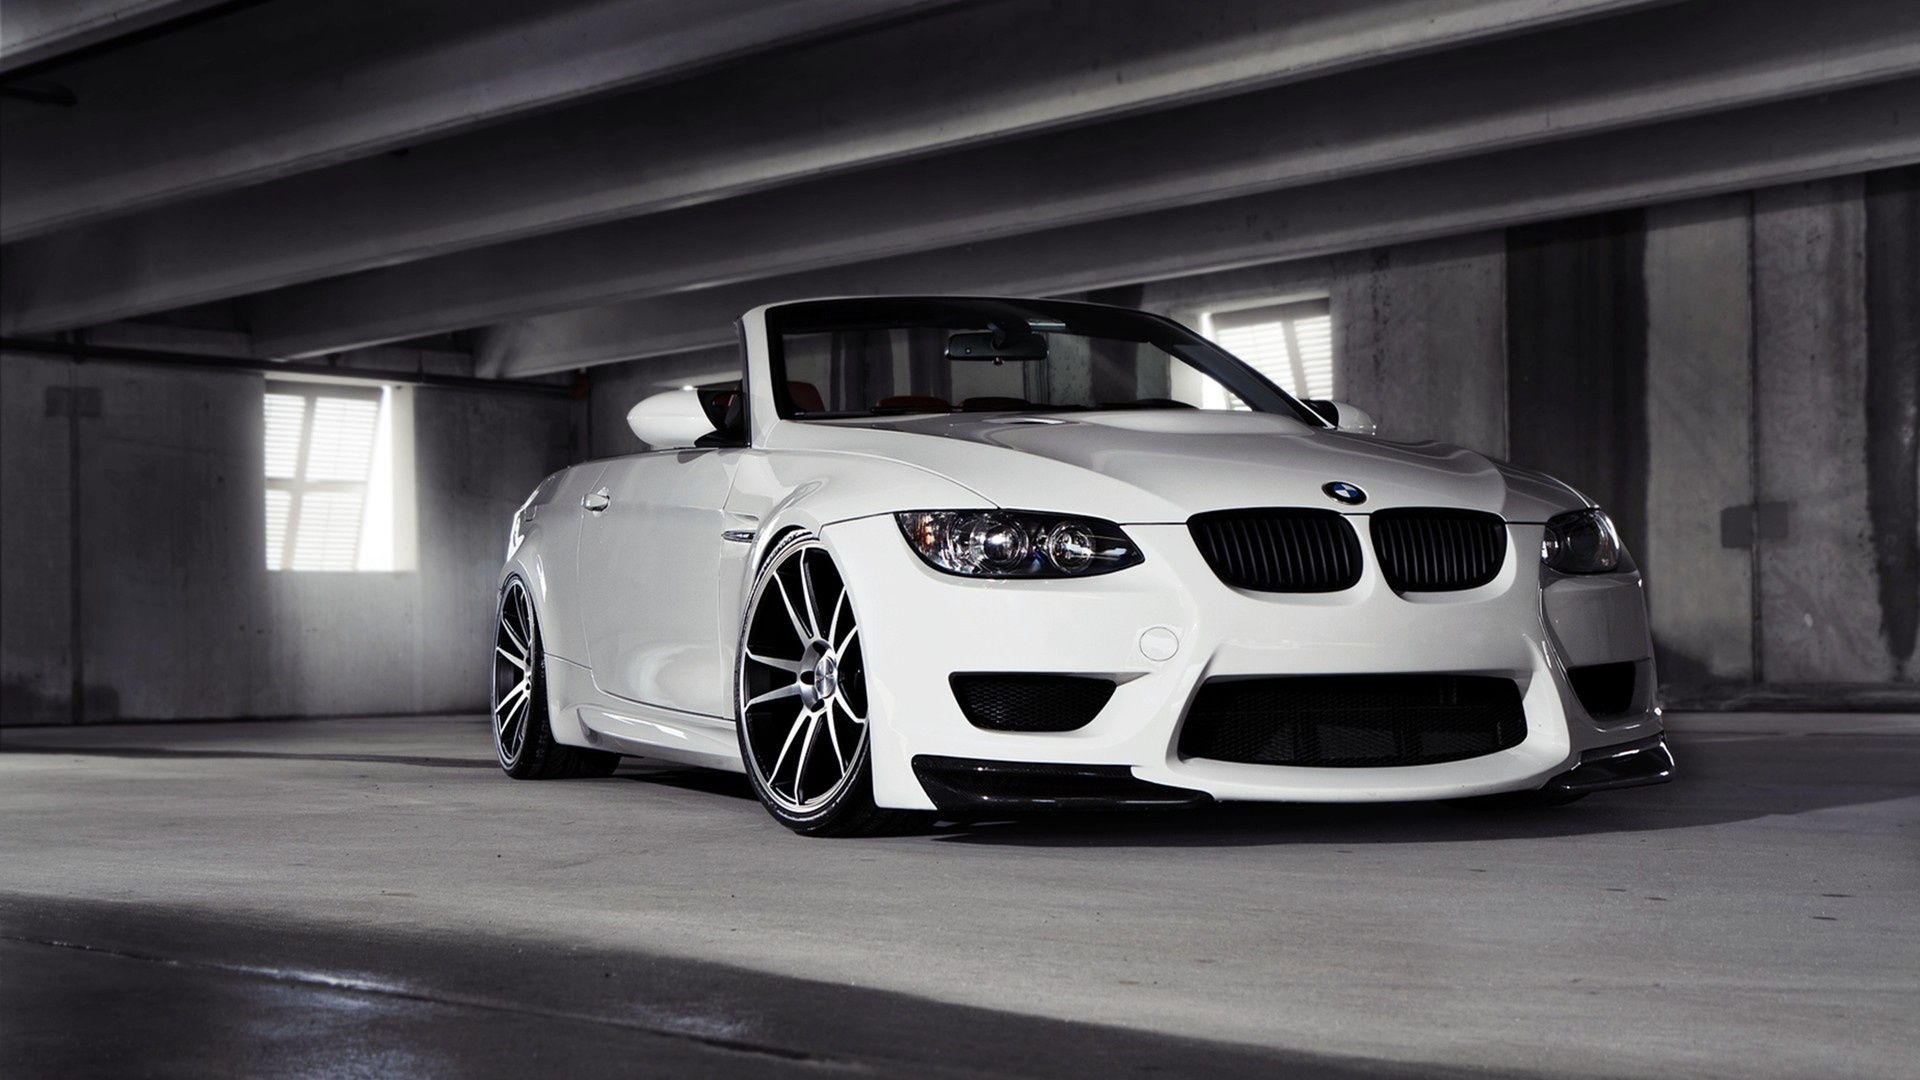 bmw m3 wallpaper 11 - [1920x1080]